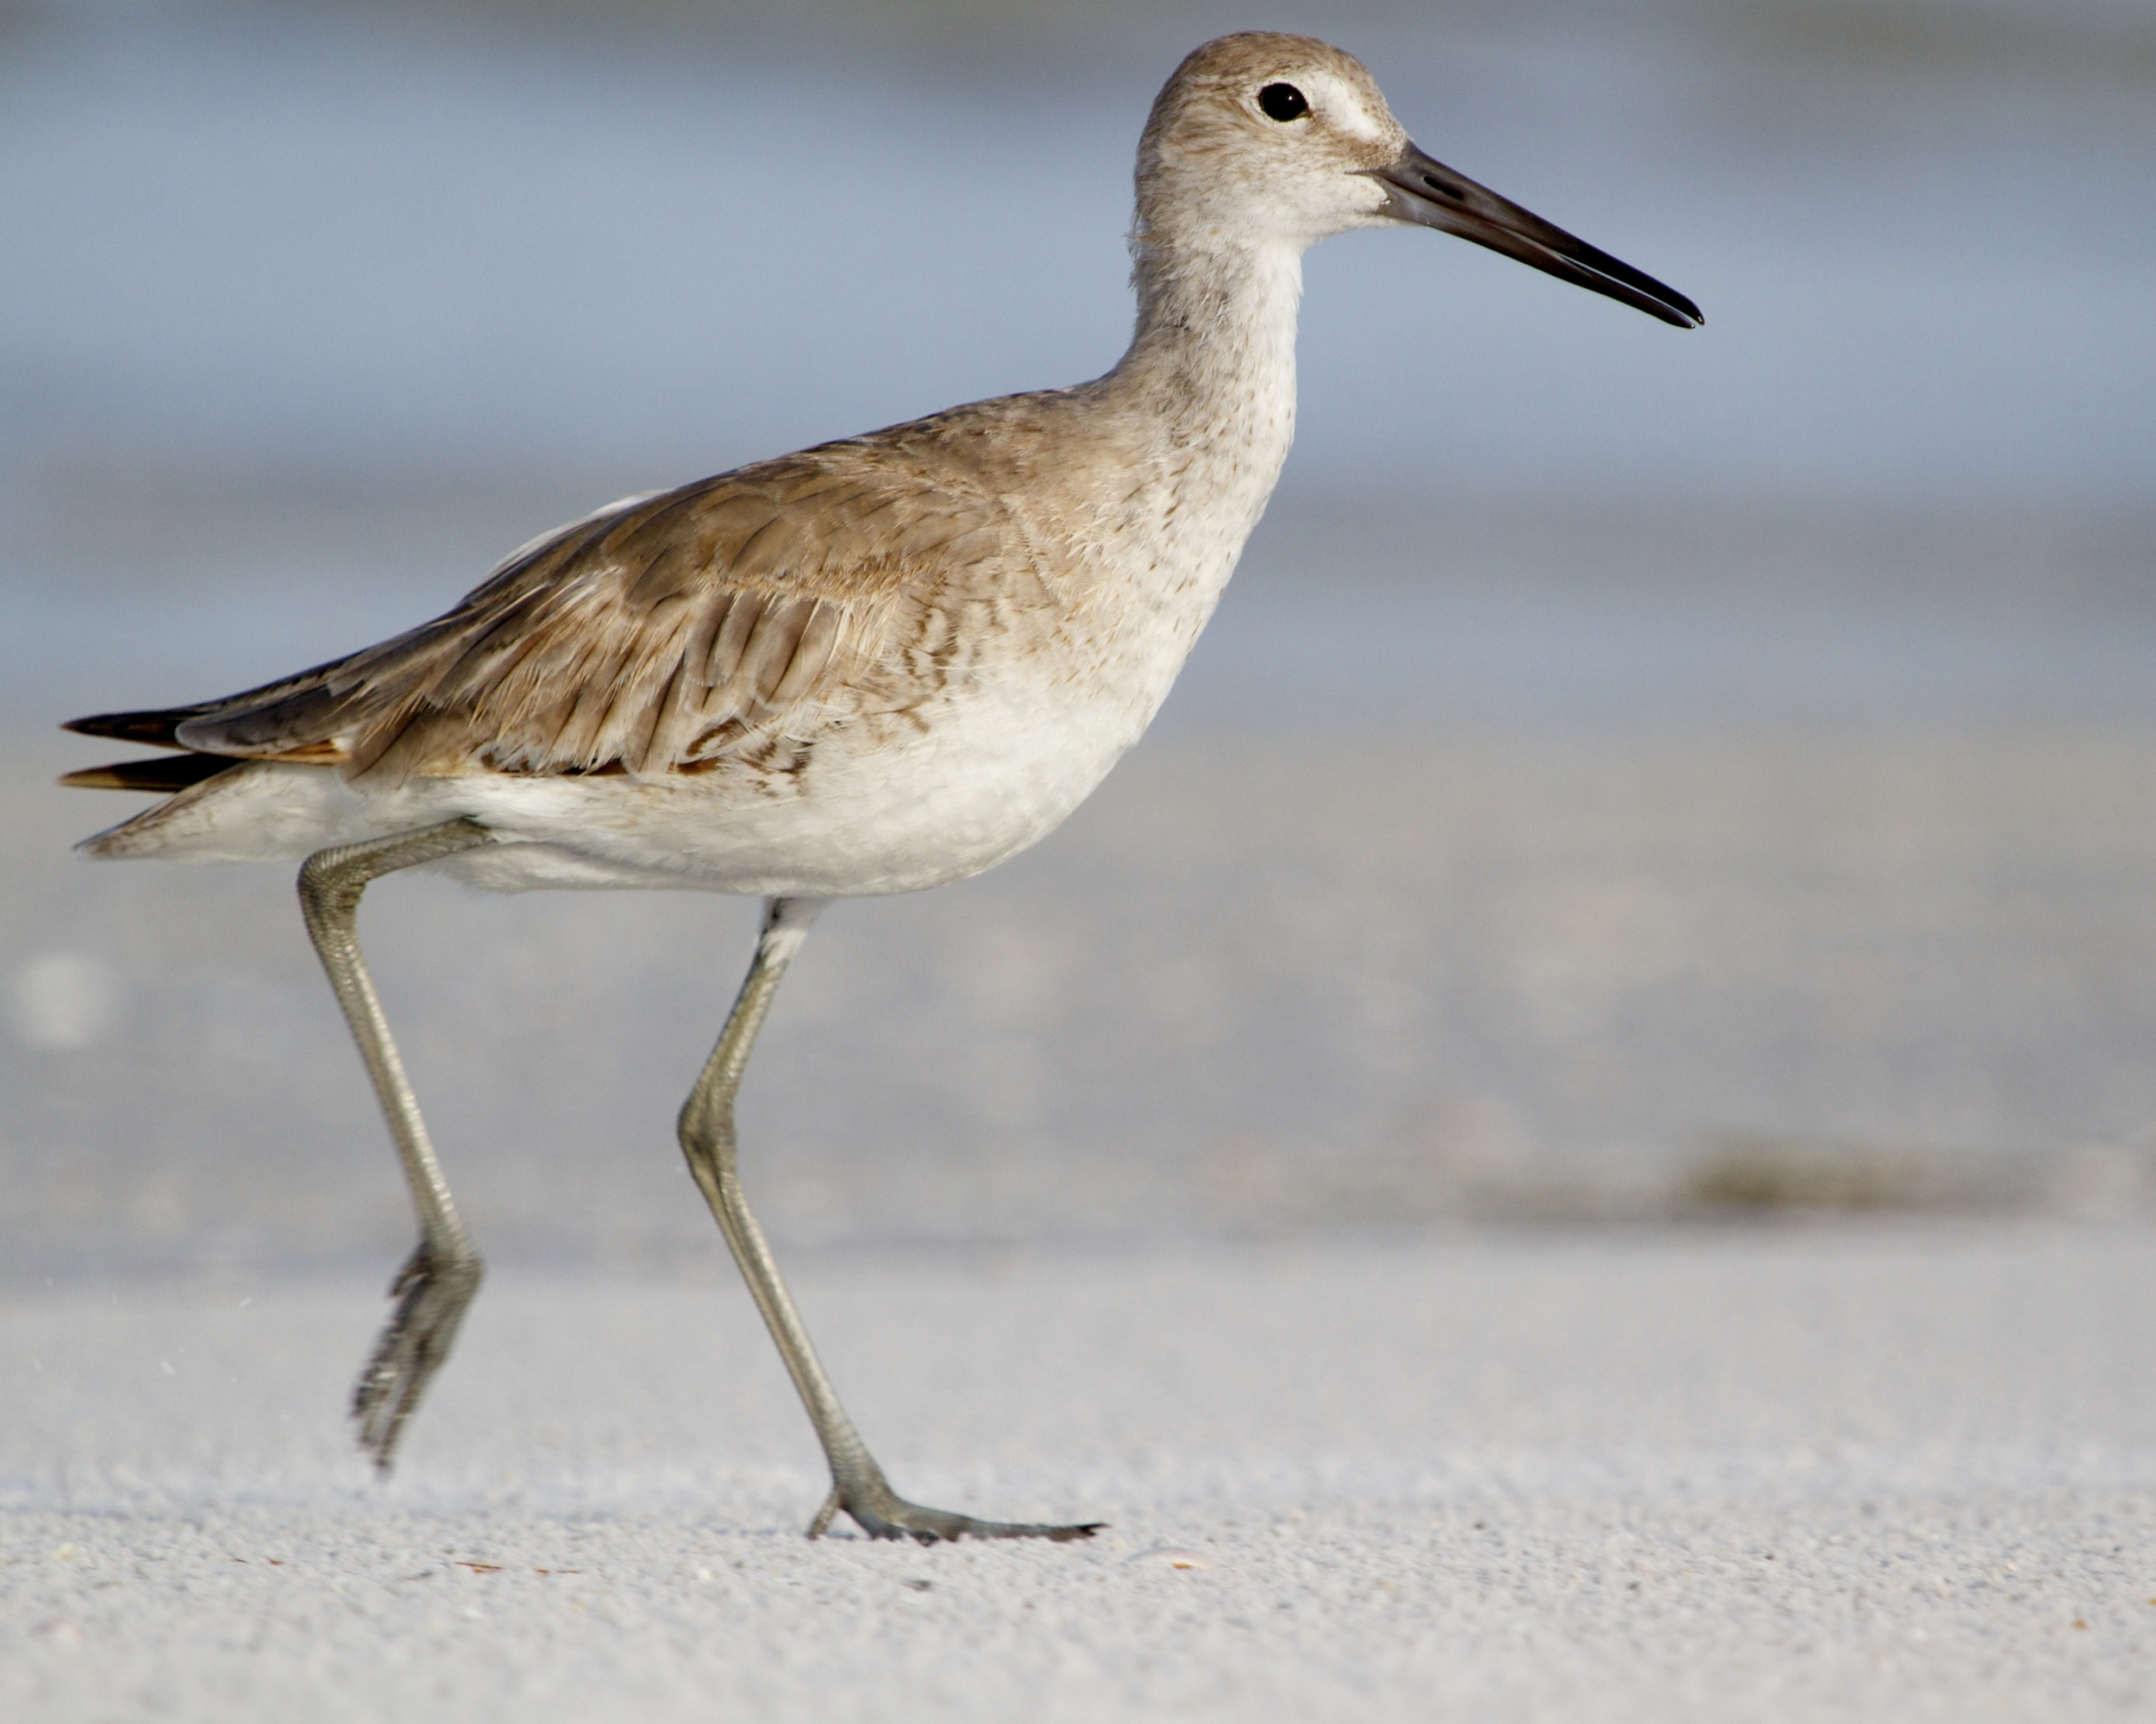 A Willet strolls the beach...